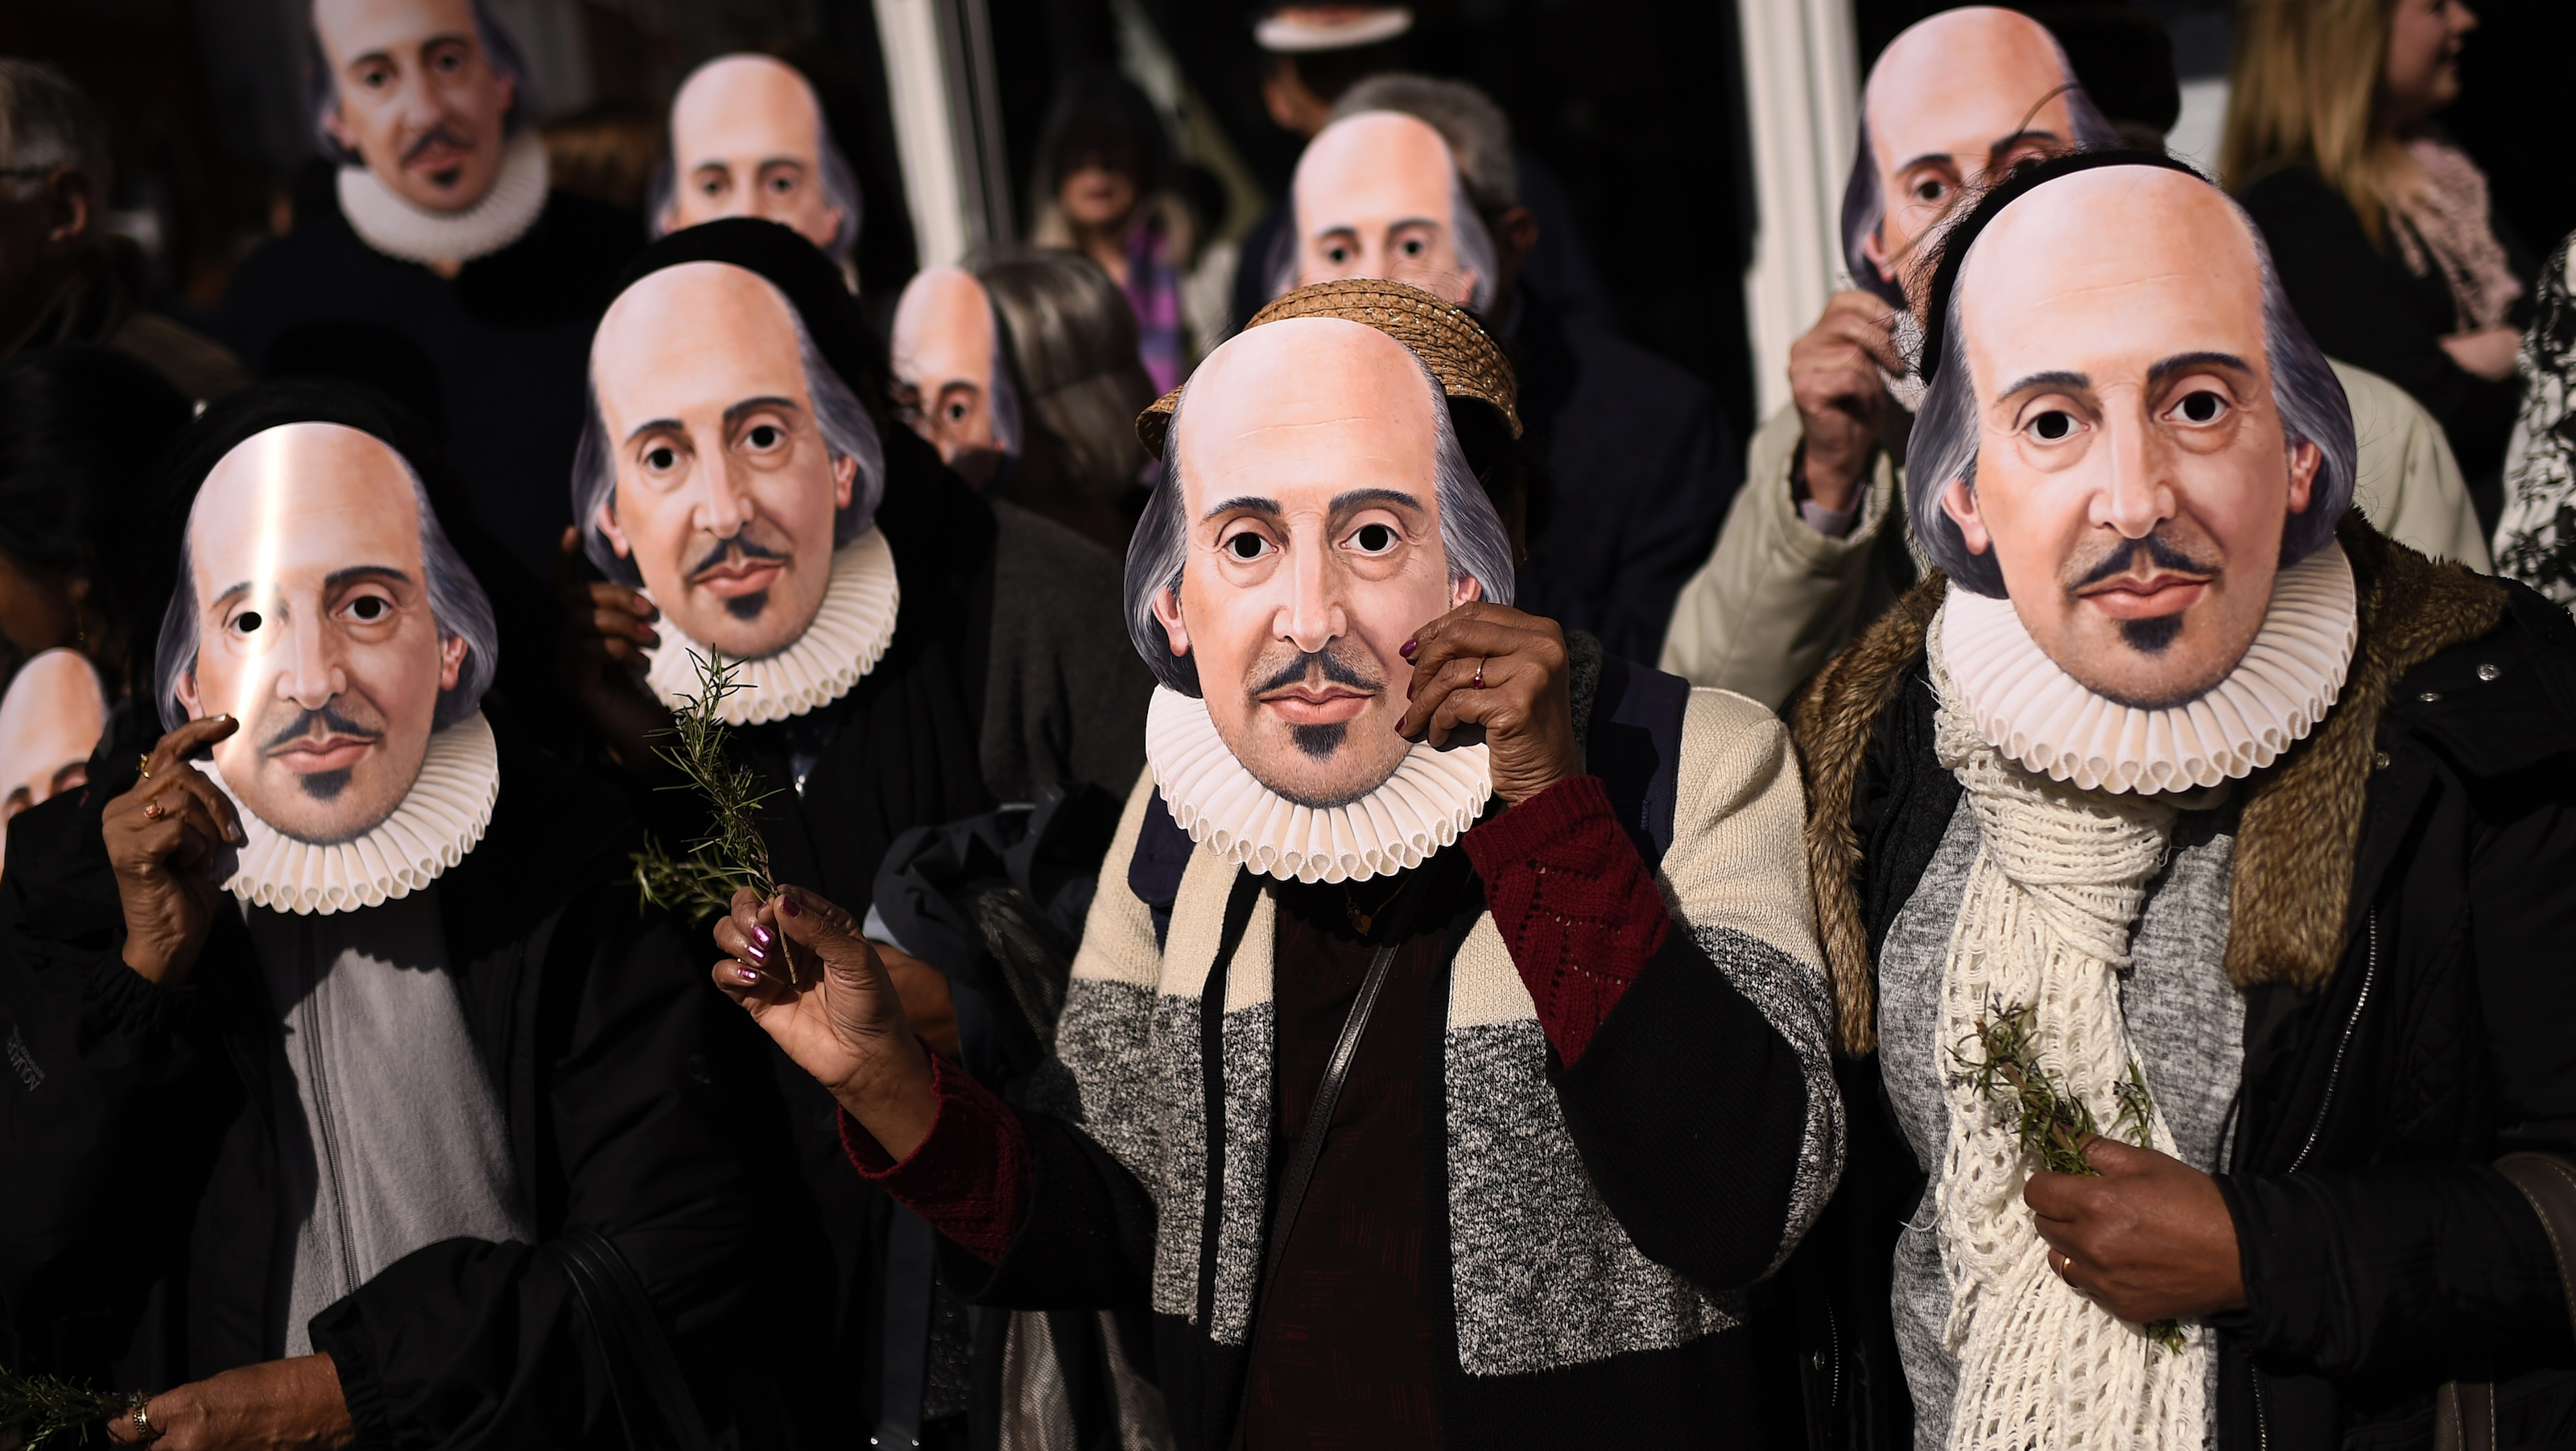 People hold up face masks with William Shakespeare's portrait during celebrations to mark the 400th anniversary of the playwright's death in the city of his birth, Stratford-Upon-Avon, Britain, April 23, 2016. REUTERS/Dylan Martinez - RTX2BAP8